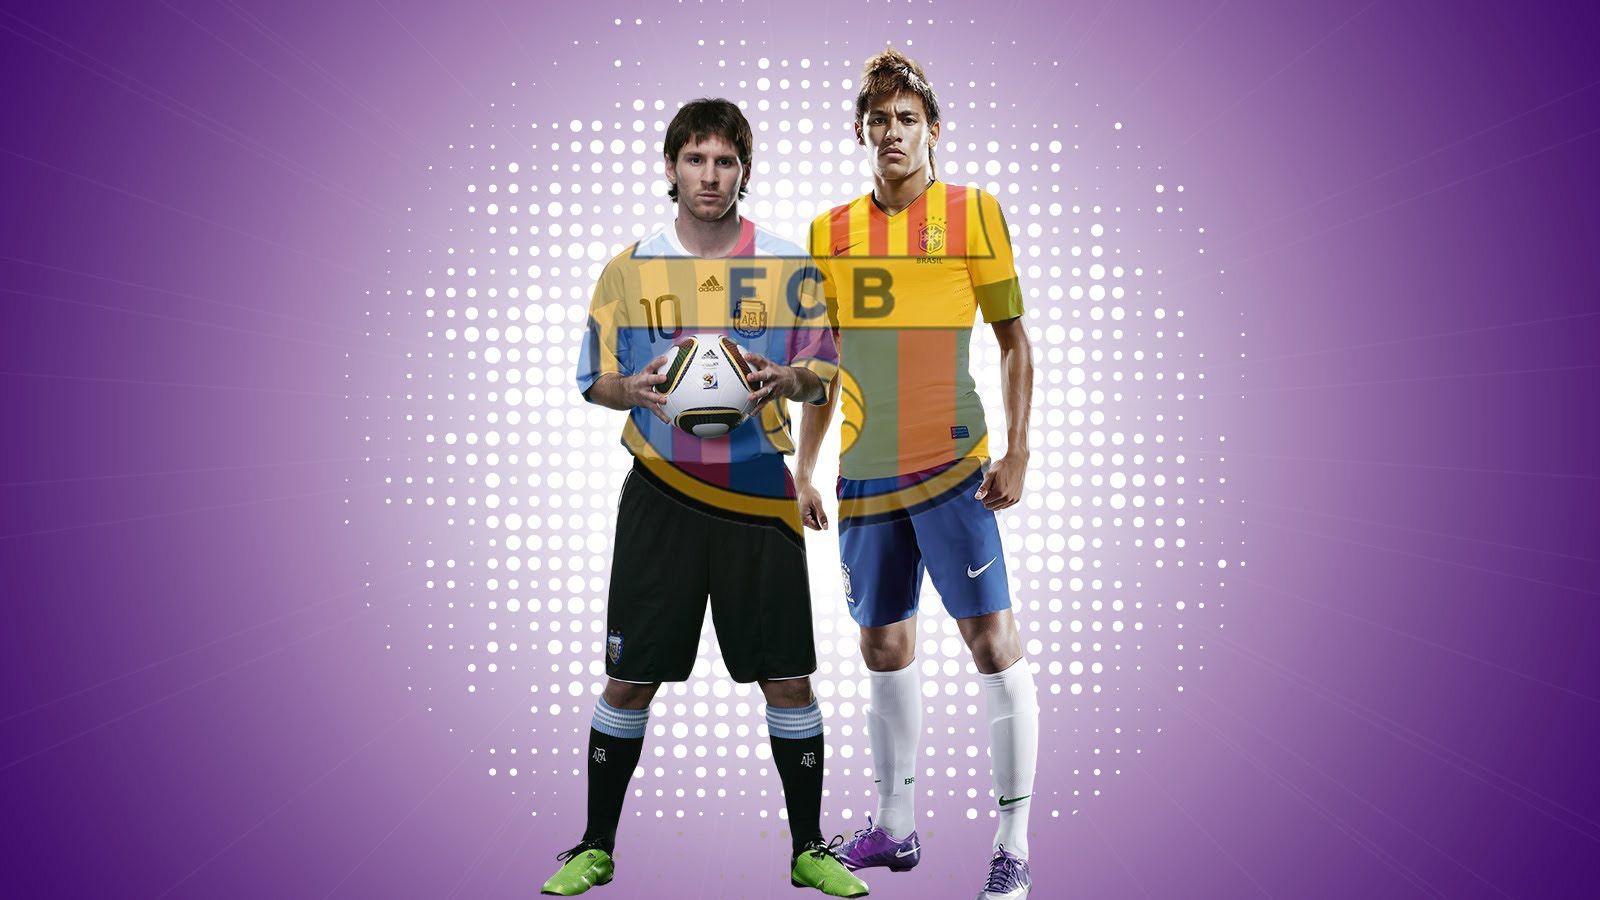 Neymar and Messi wallpaper - FC Barcelona 2013-2014